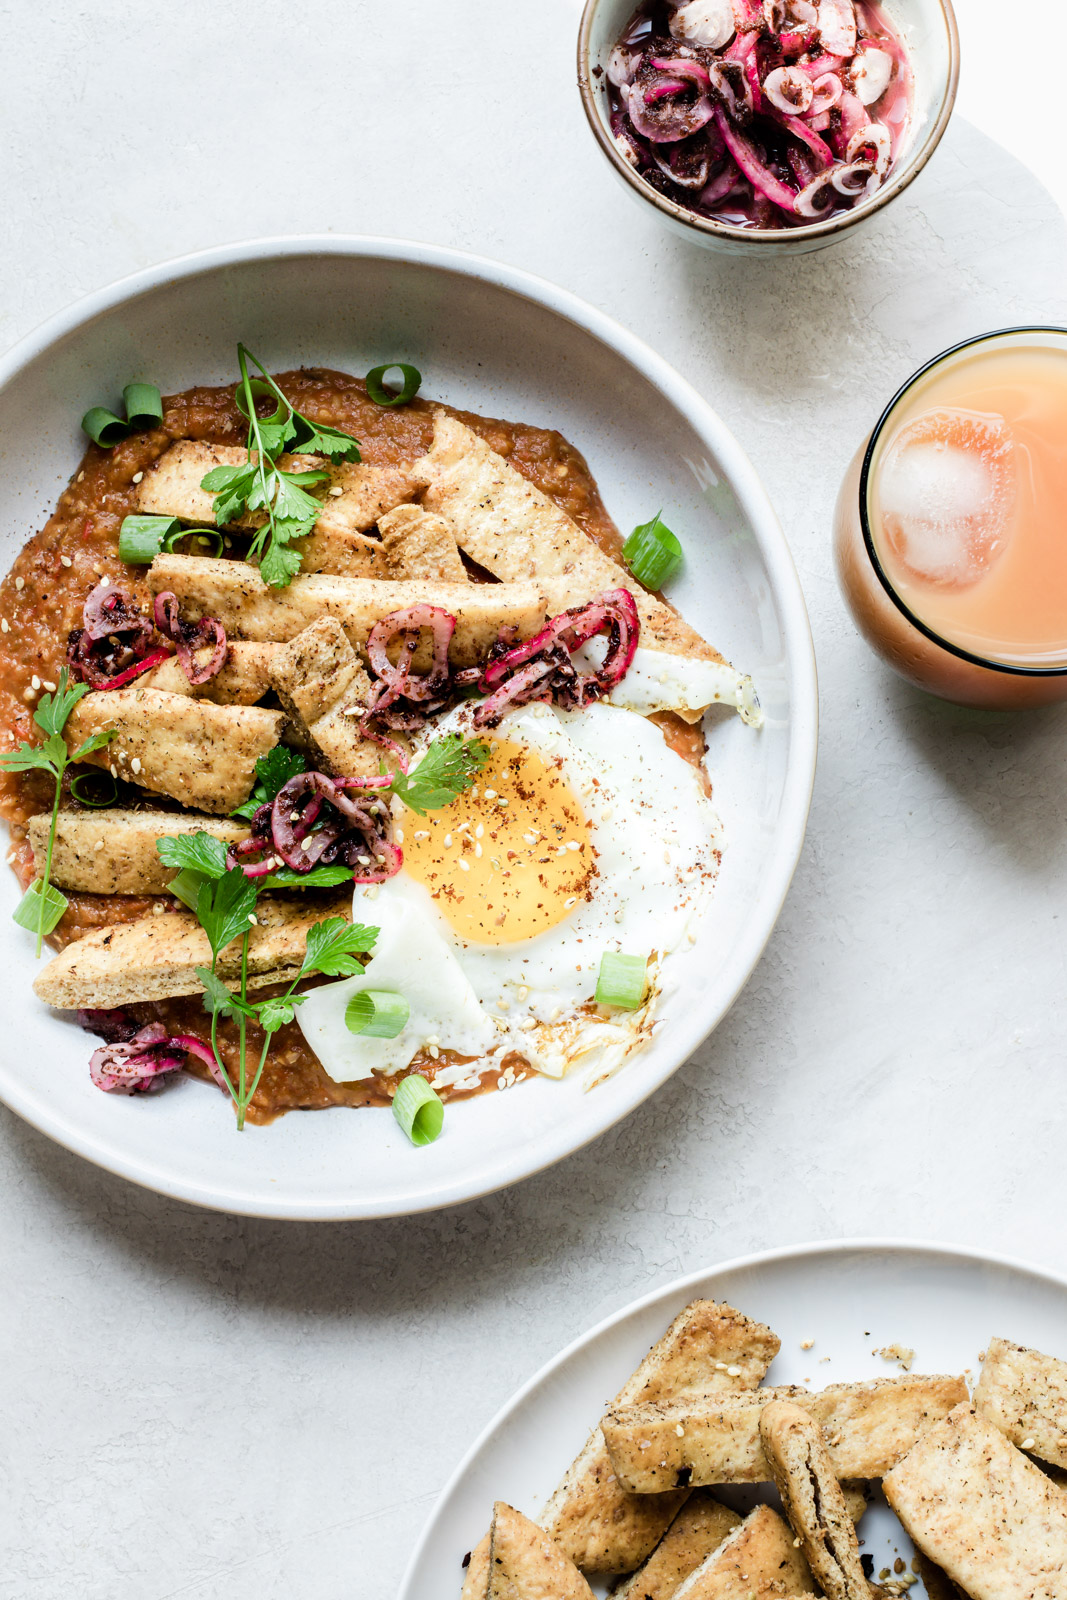 Bowl of pitaquiles topped with a fried egg and sumac onions surrounded by a small bowl of sumac onions, a glass of grapefruit juice, and a plate of pita chips